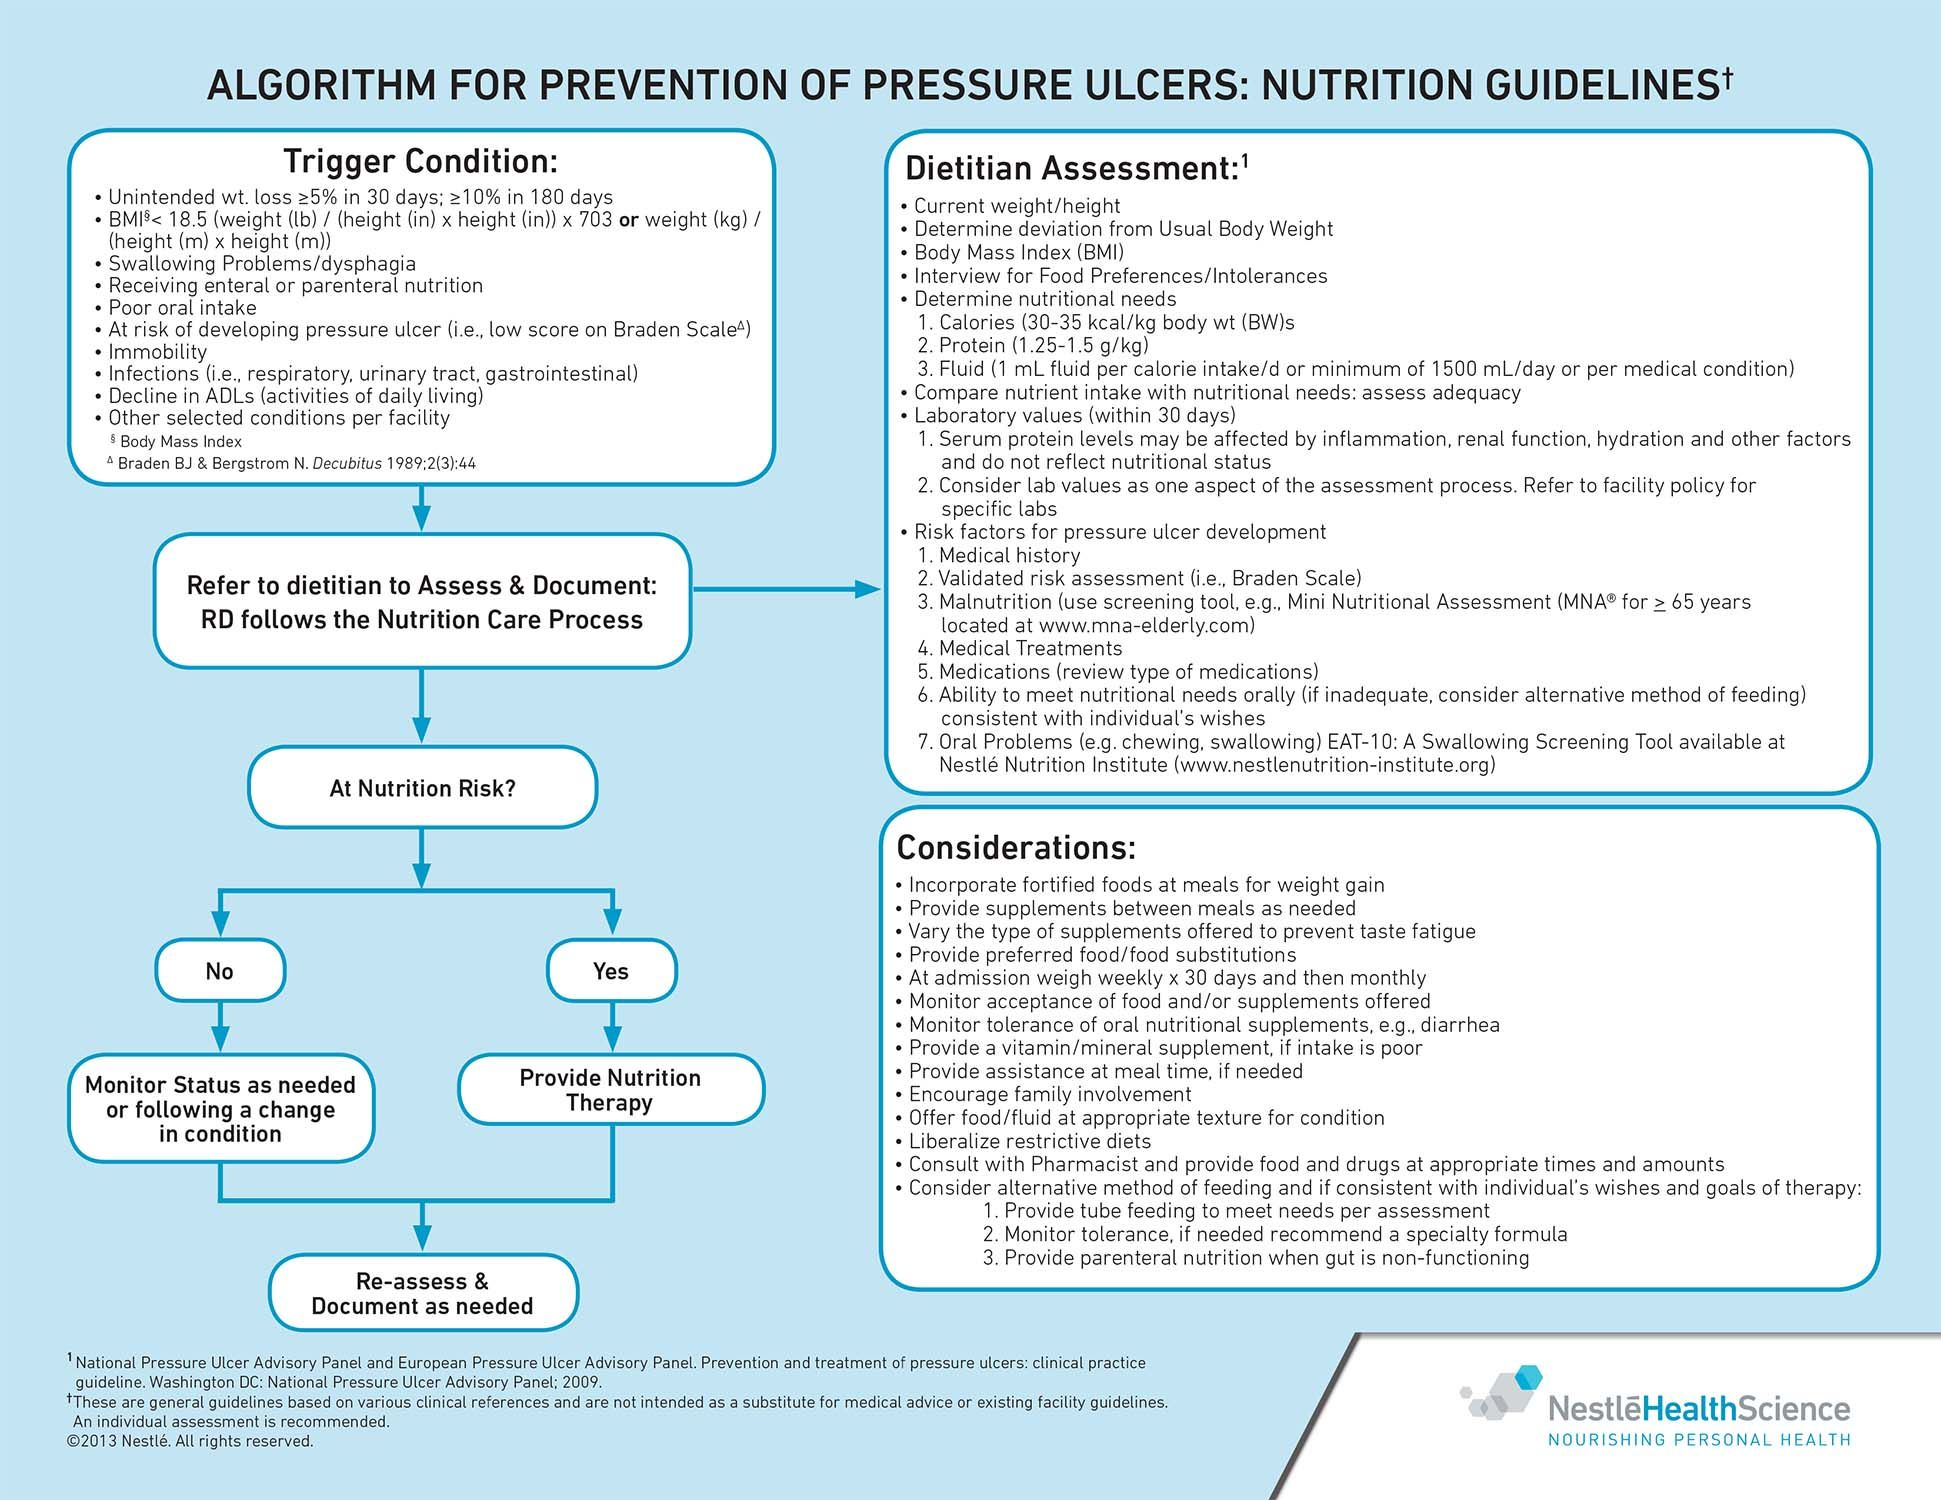 Algorithm for Prevention of Pressure Ulcers Nutrition